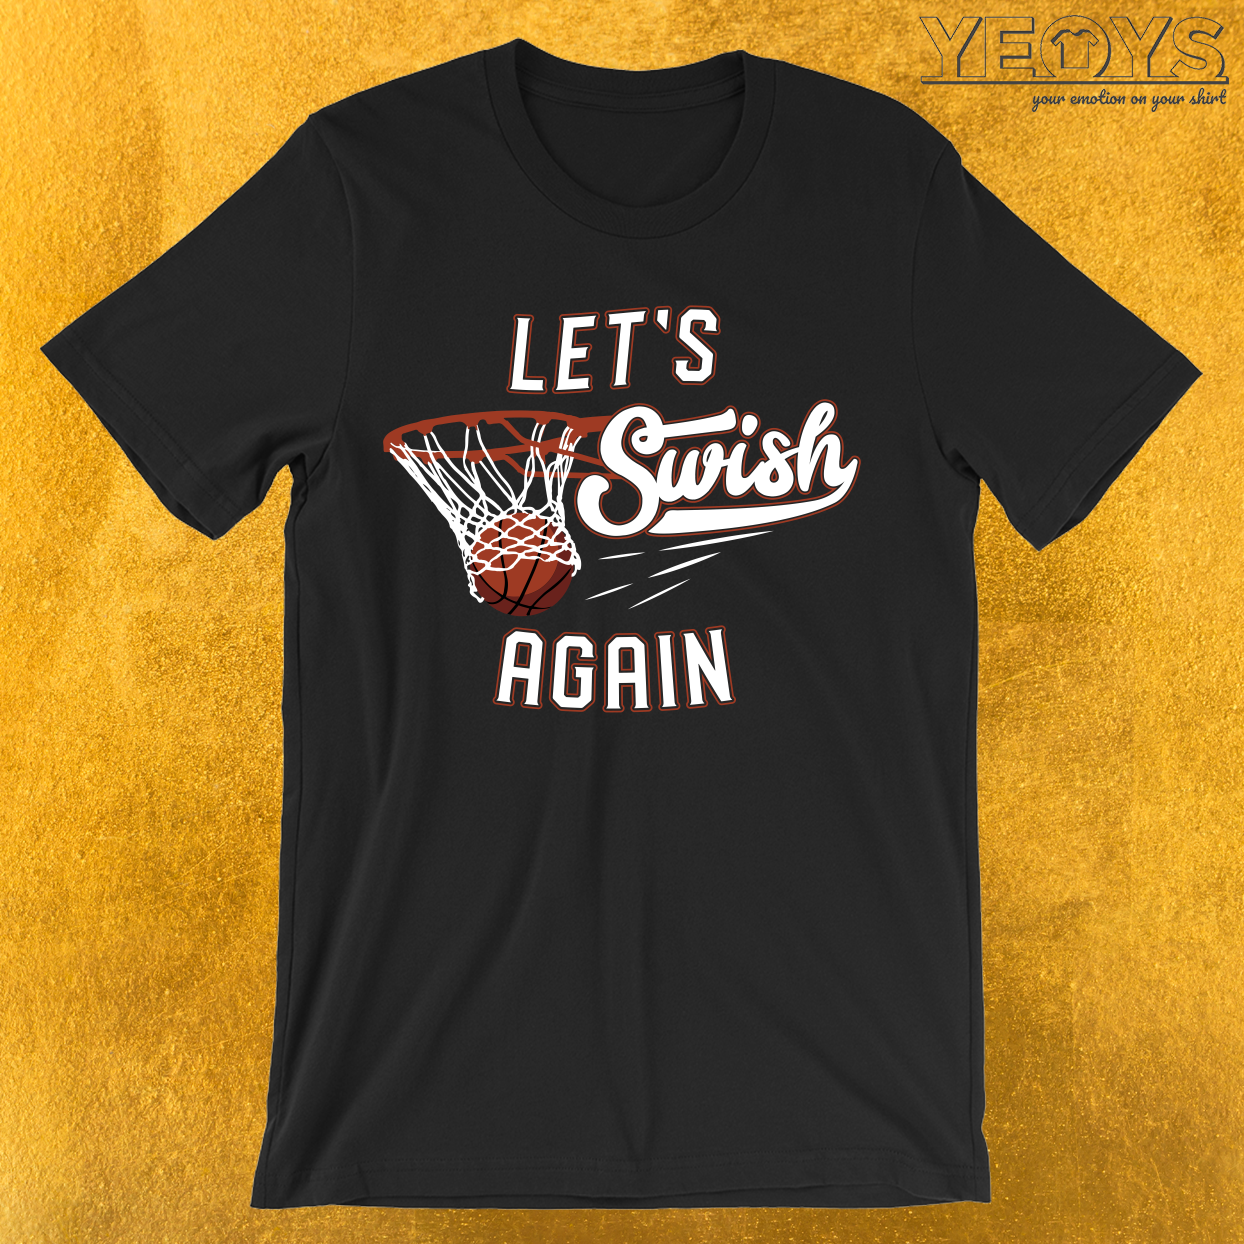 Let's Swish Again T-Shirt